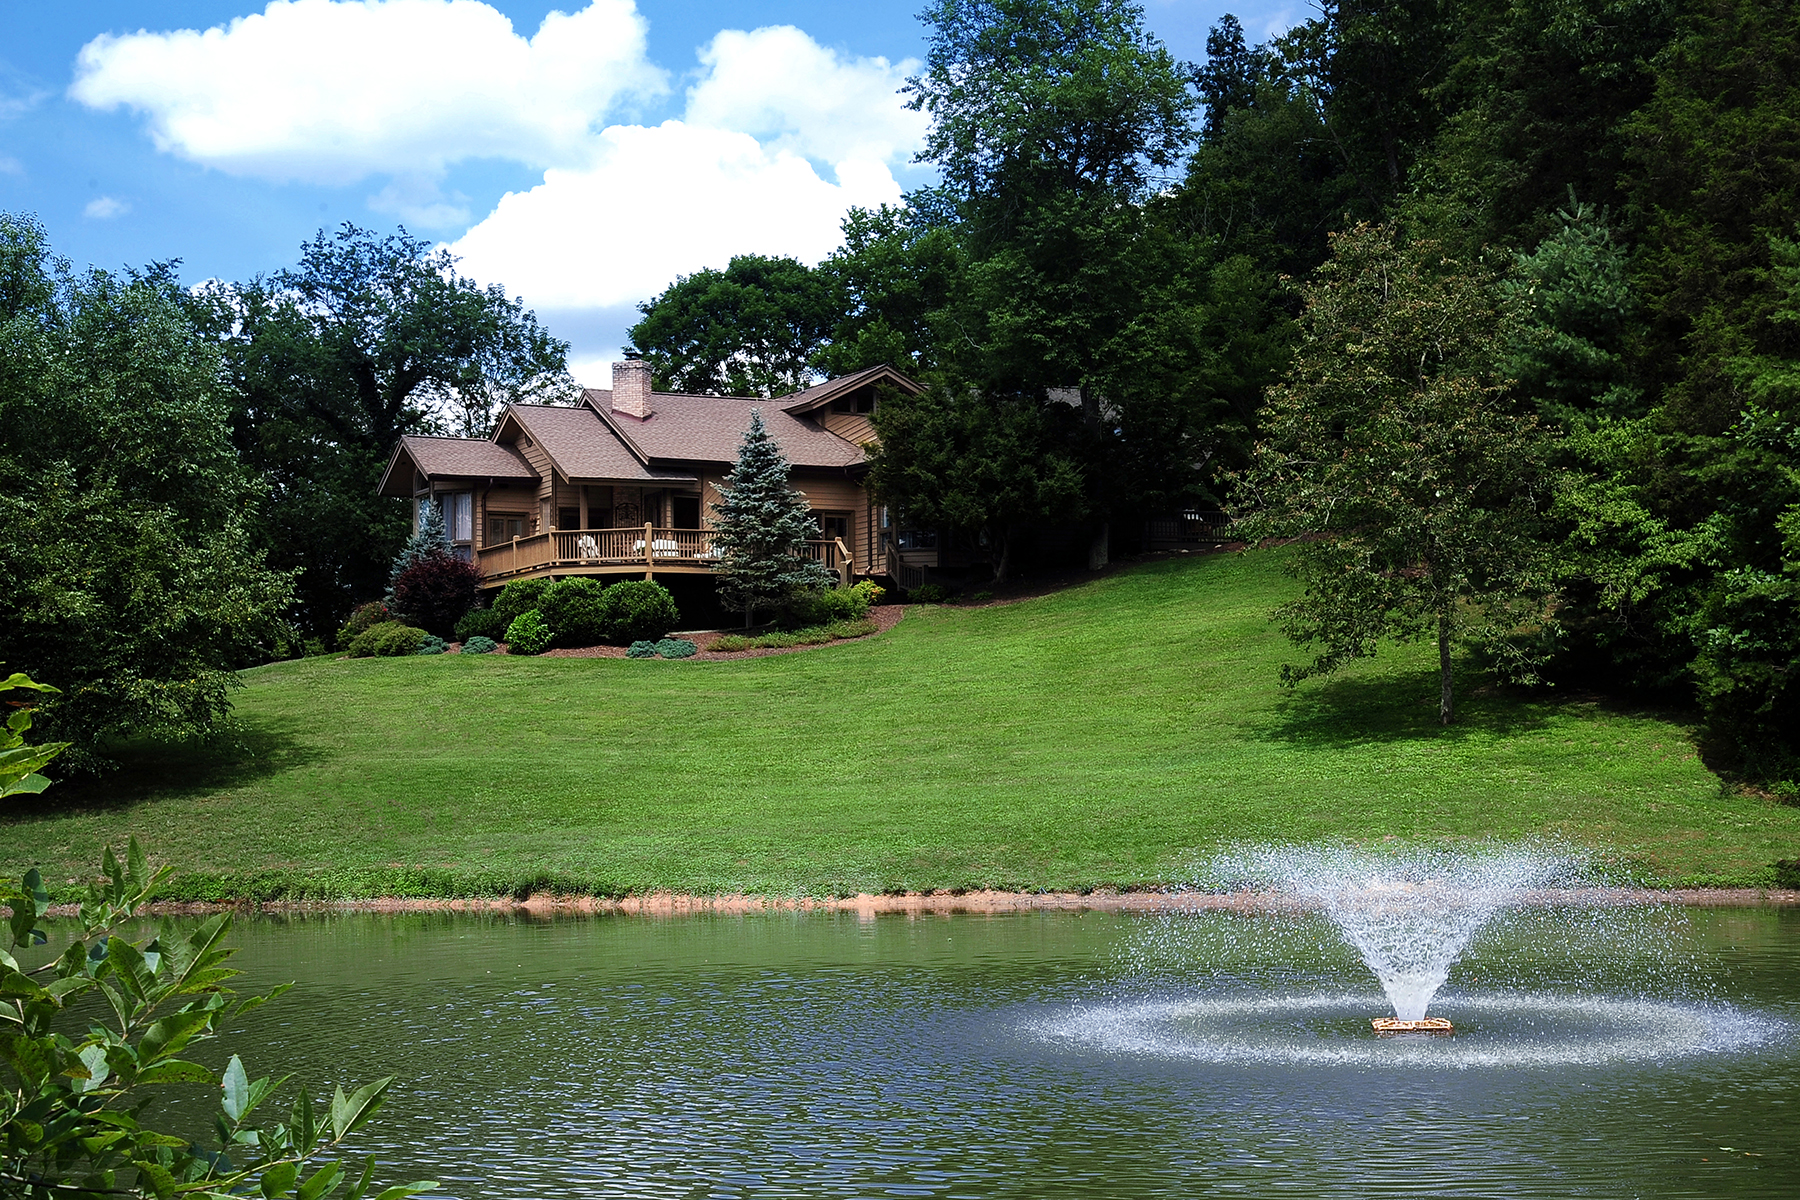 Single Family Home for Sale at 409 ACRE ESTATE WITH 4 HOUSES IN BRISTOL, TN 485 Gentry Ln Bristol, Tennessee 37620 United States